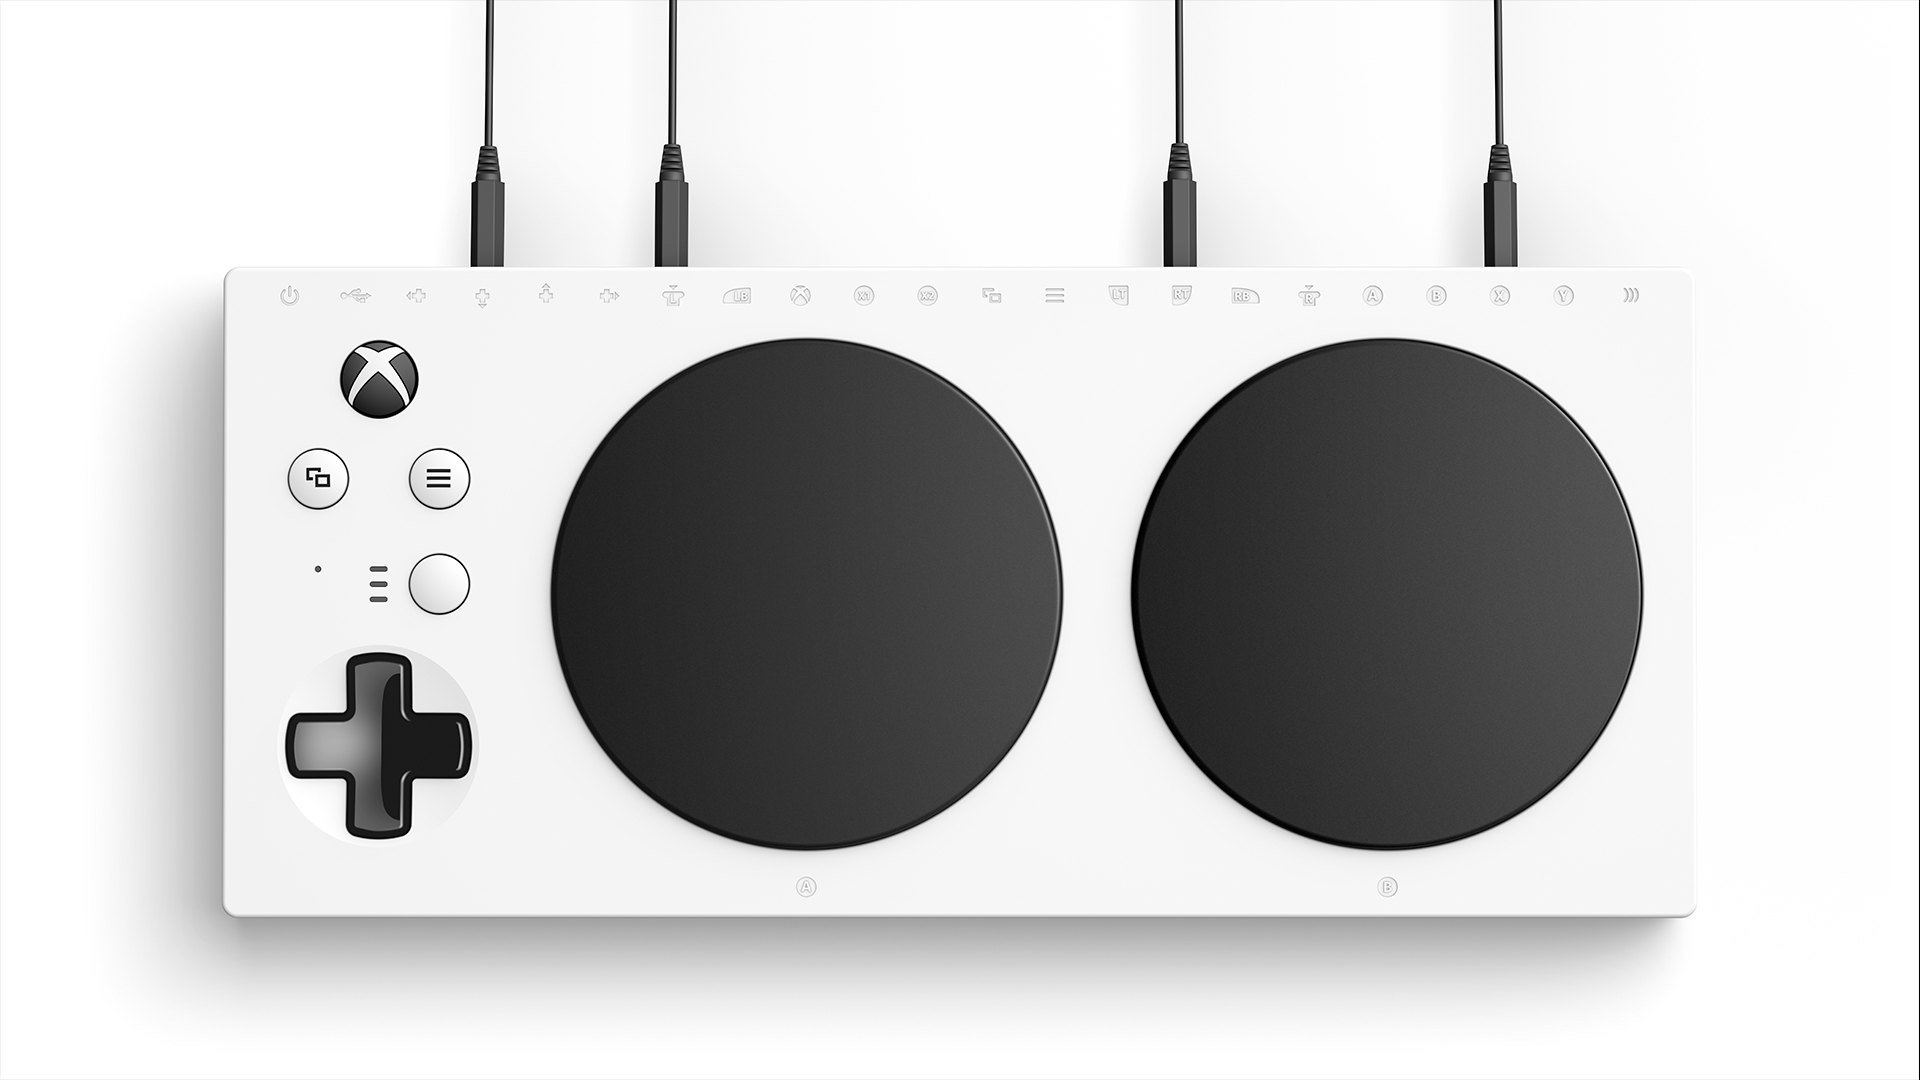 Xbox Adaptive Controller now listed on Xbox Report a Problem app